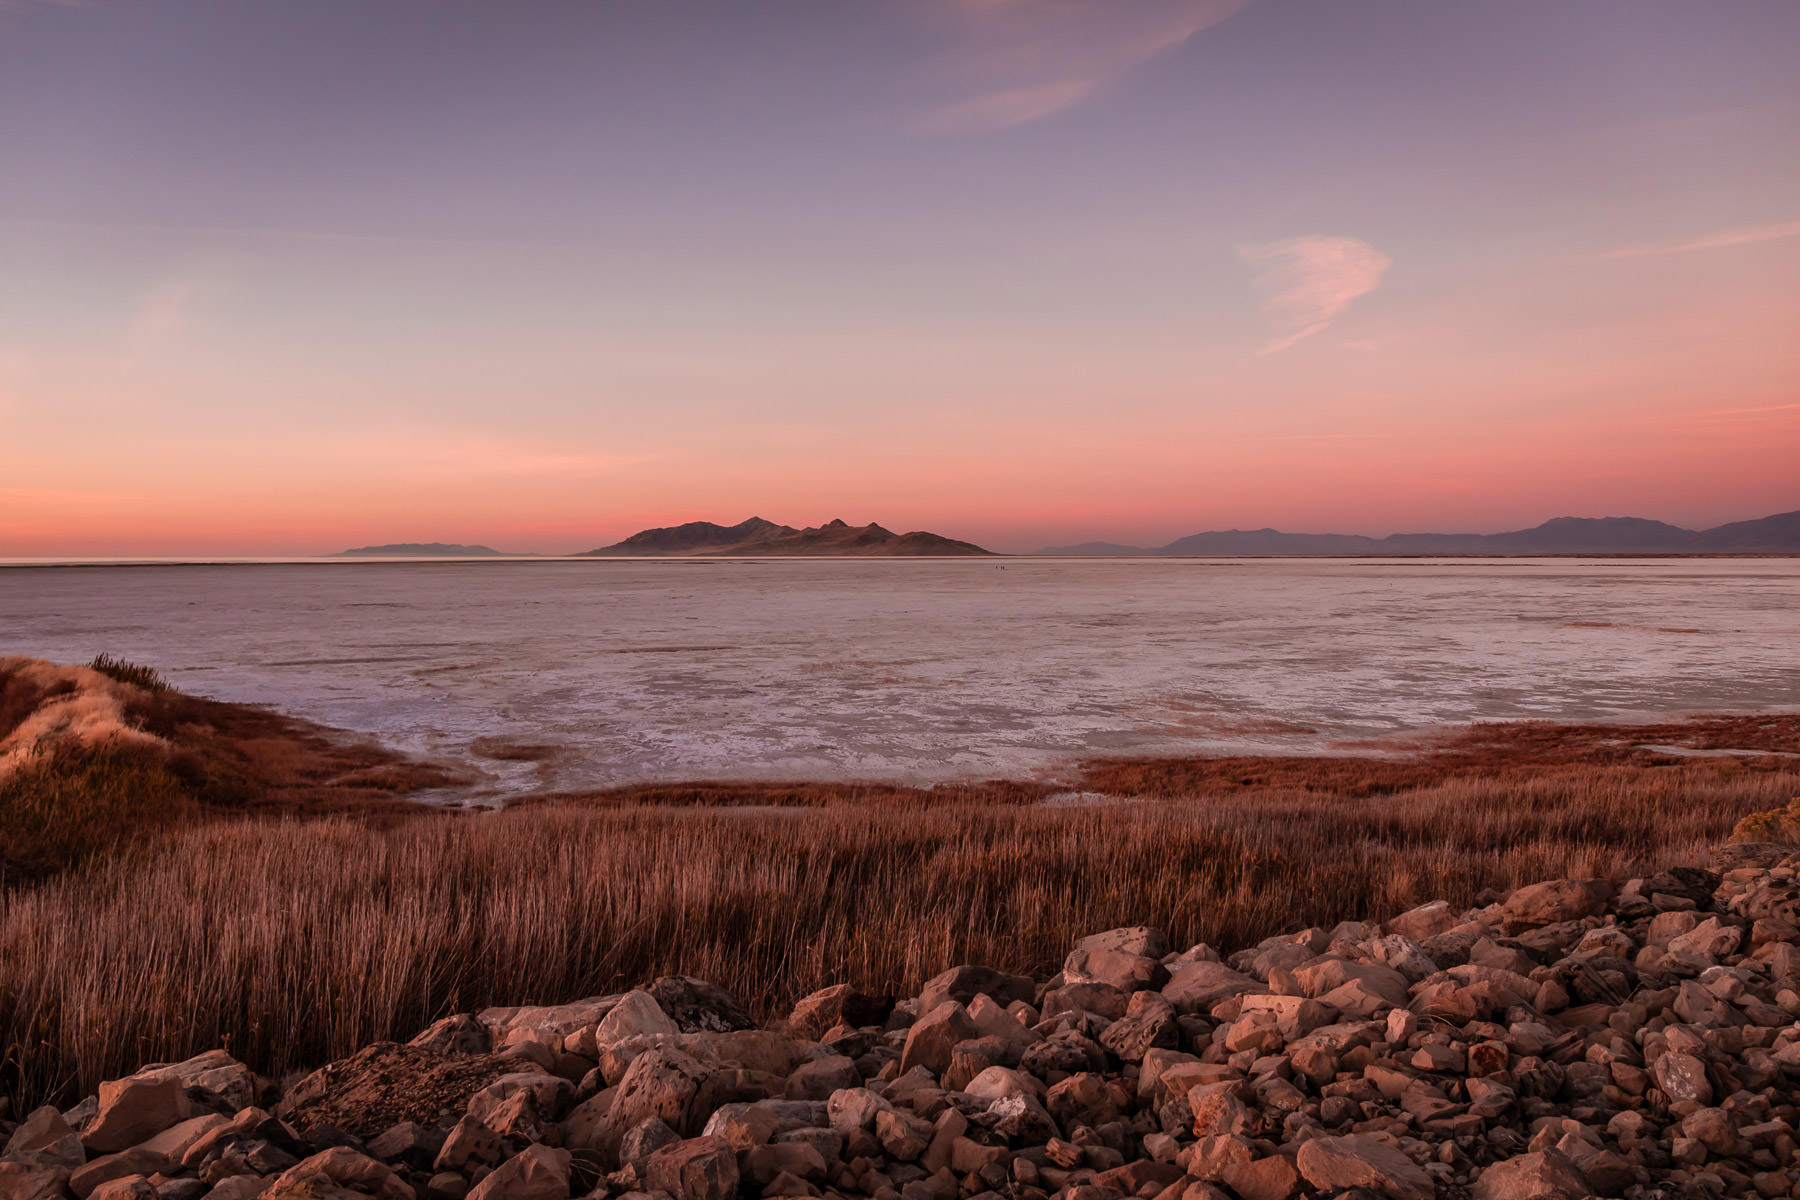 The sun sets on Utah's Great Salt Lake.